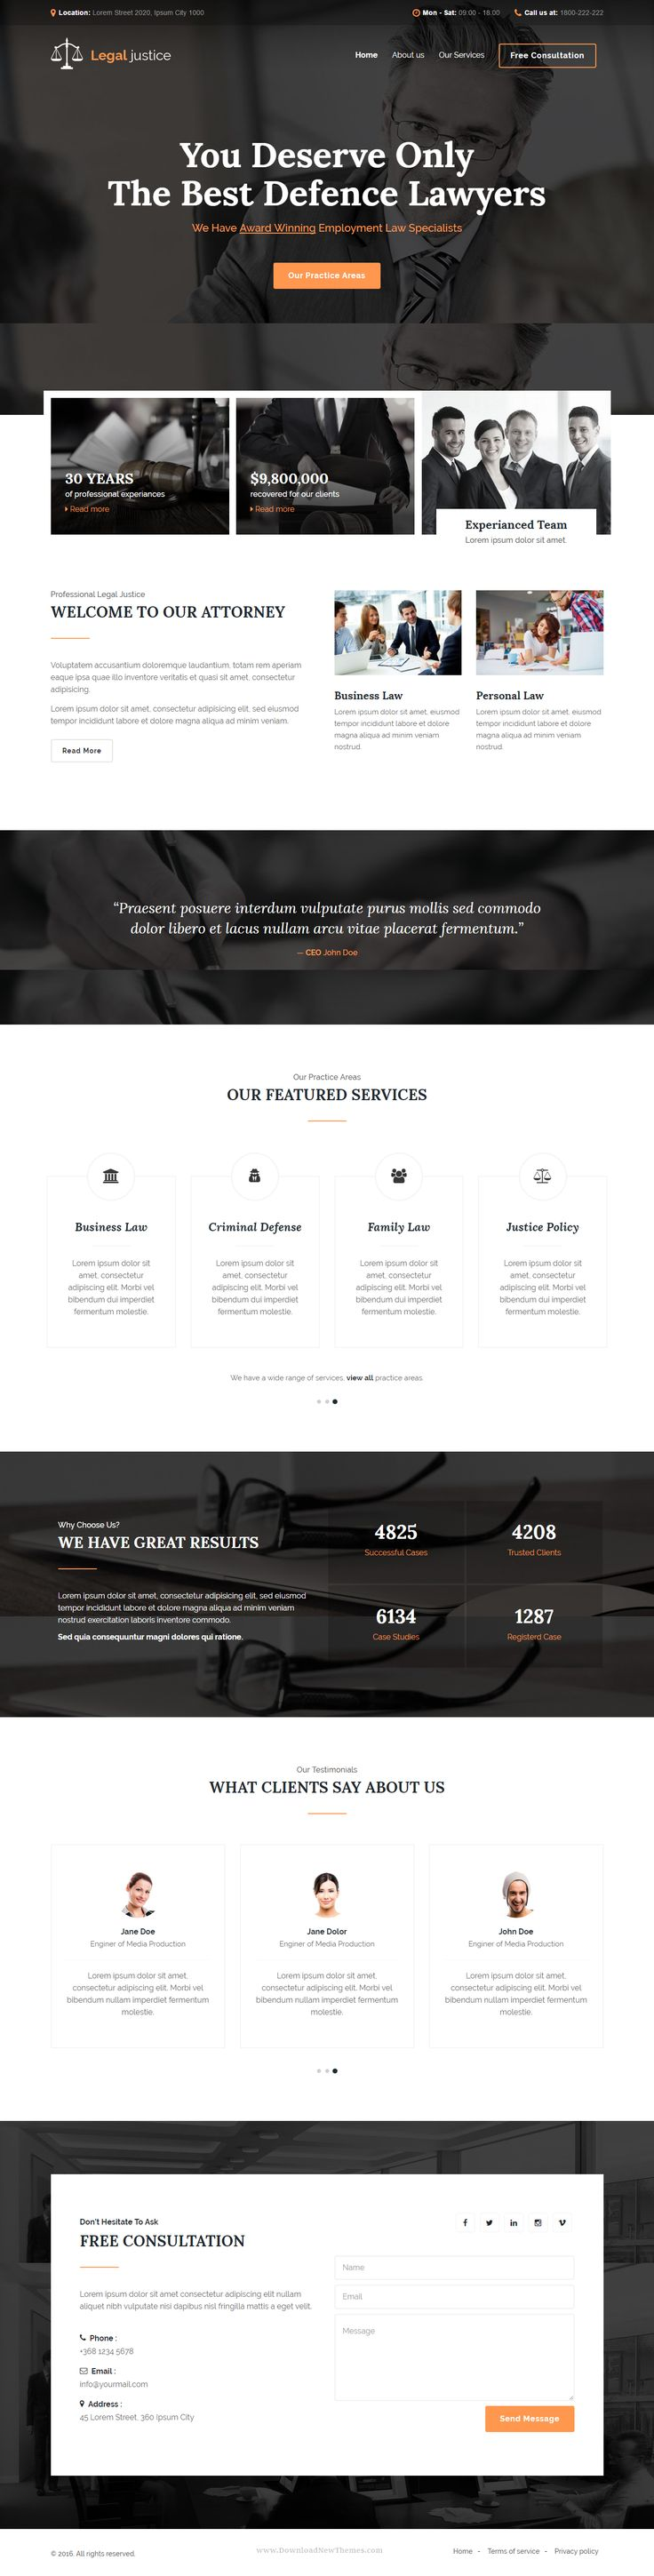 Legal justice is a stunning HTML5 Template – to make the best impression on…